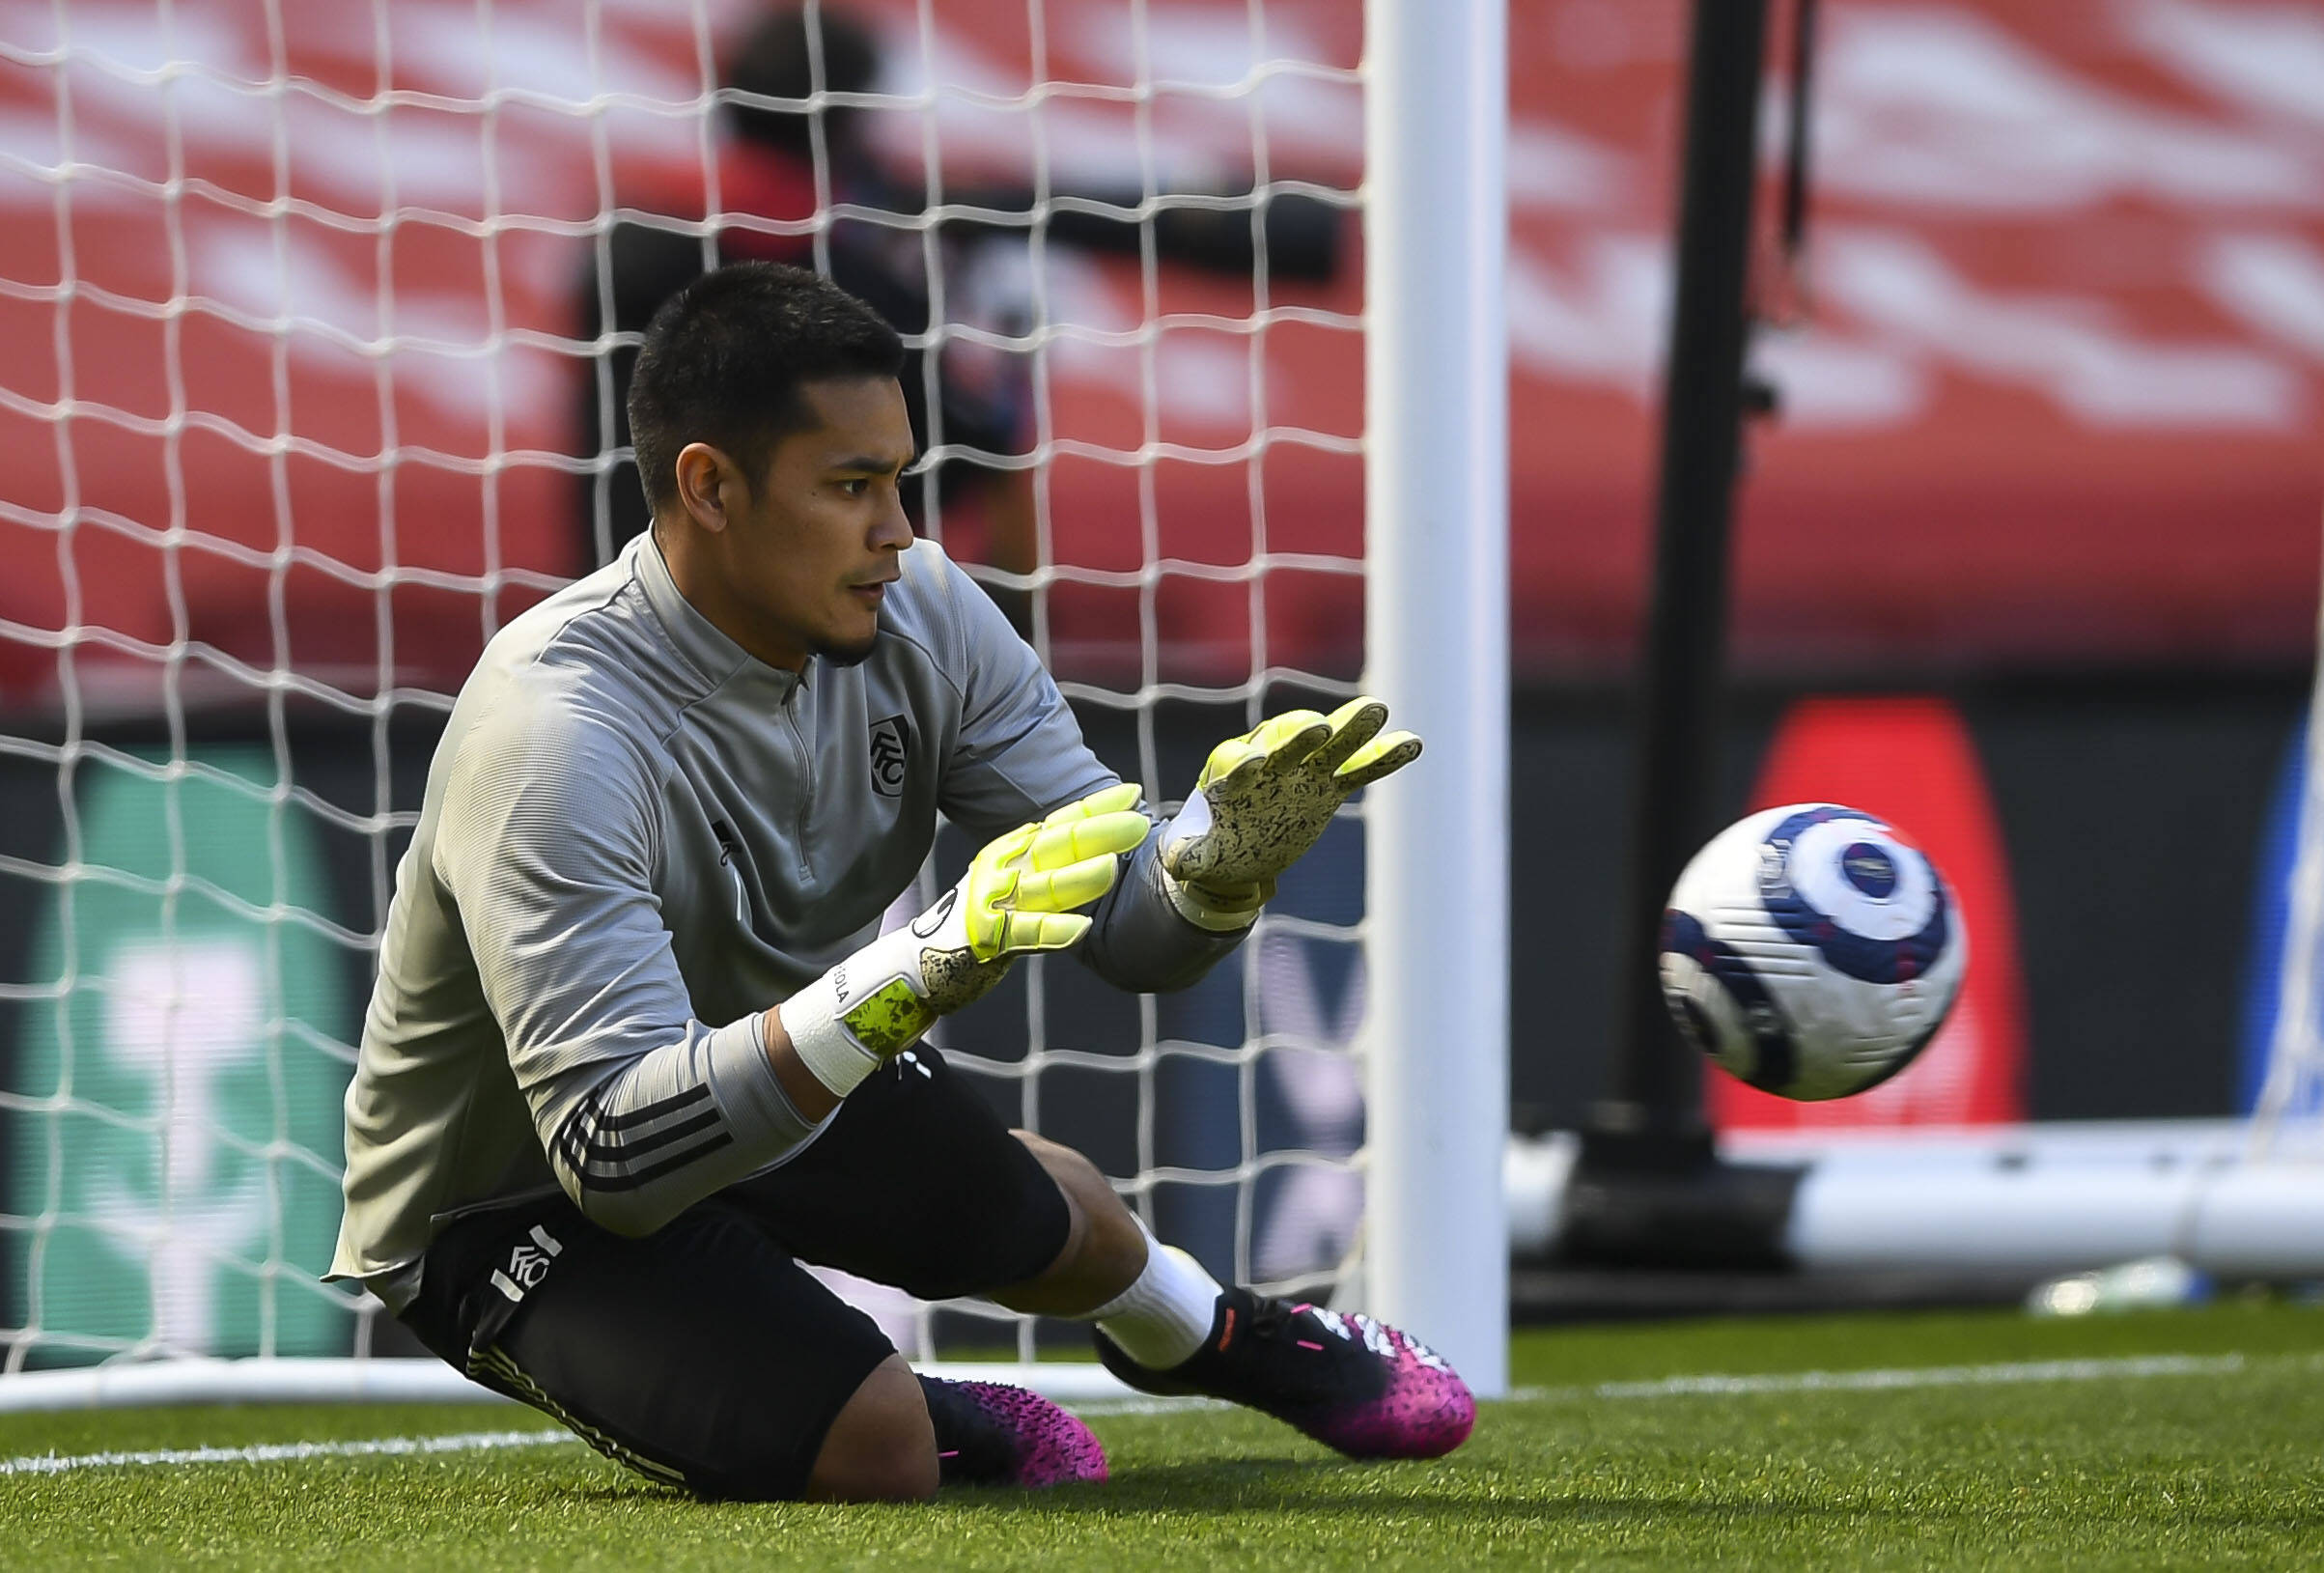 West Ham are in a strong position to land Areola who is seen in the picture